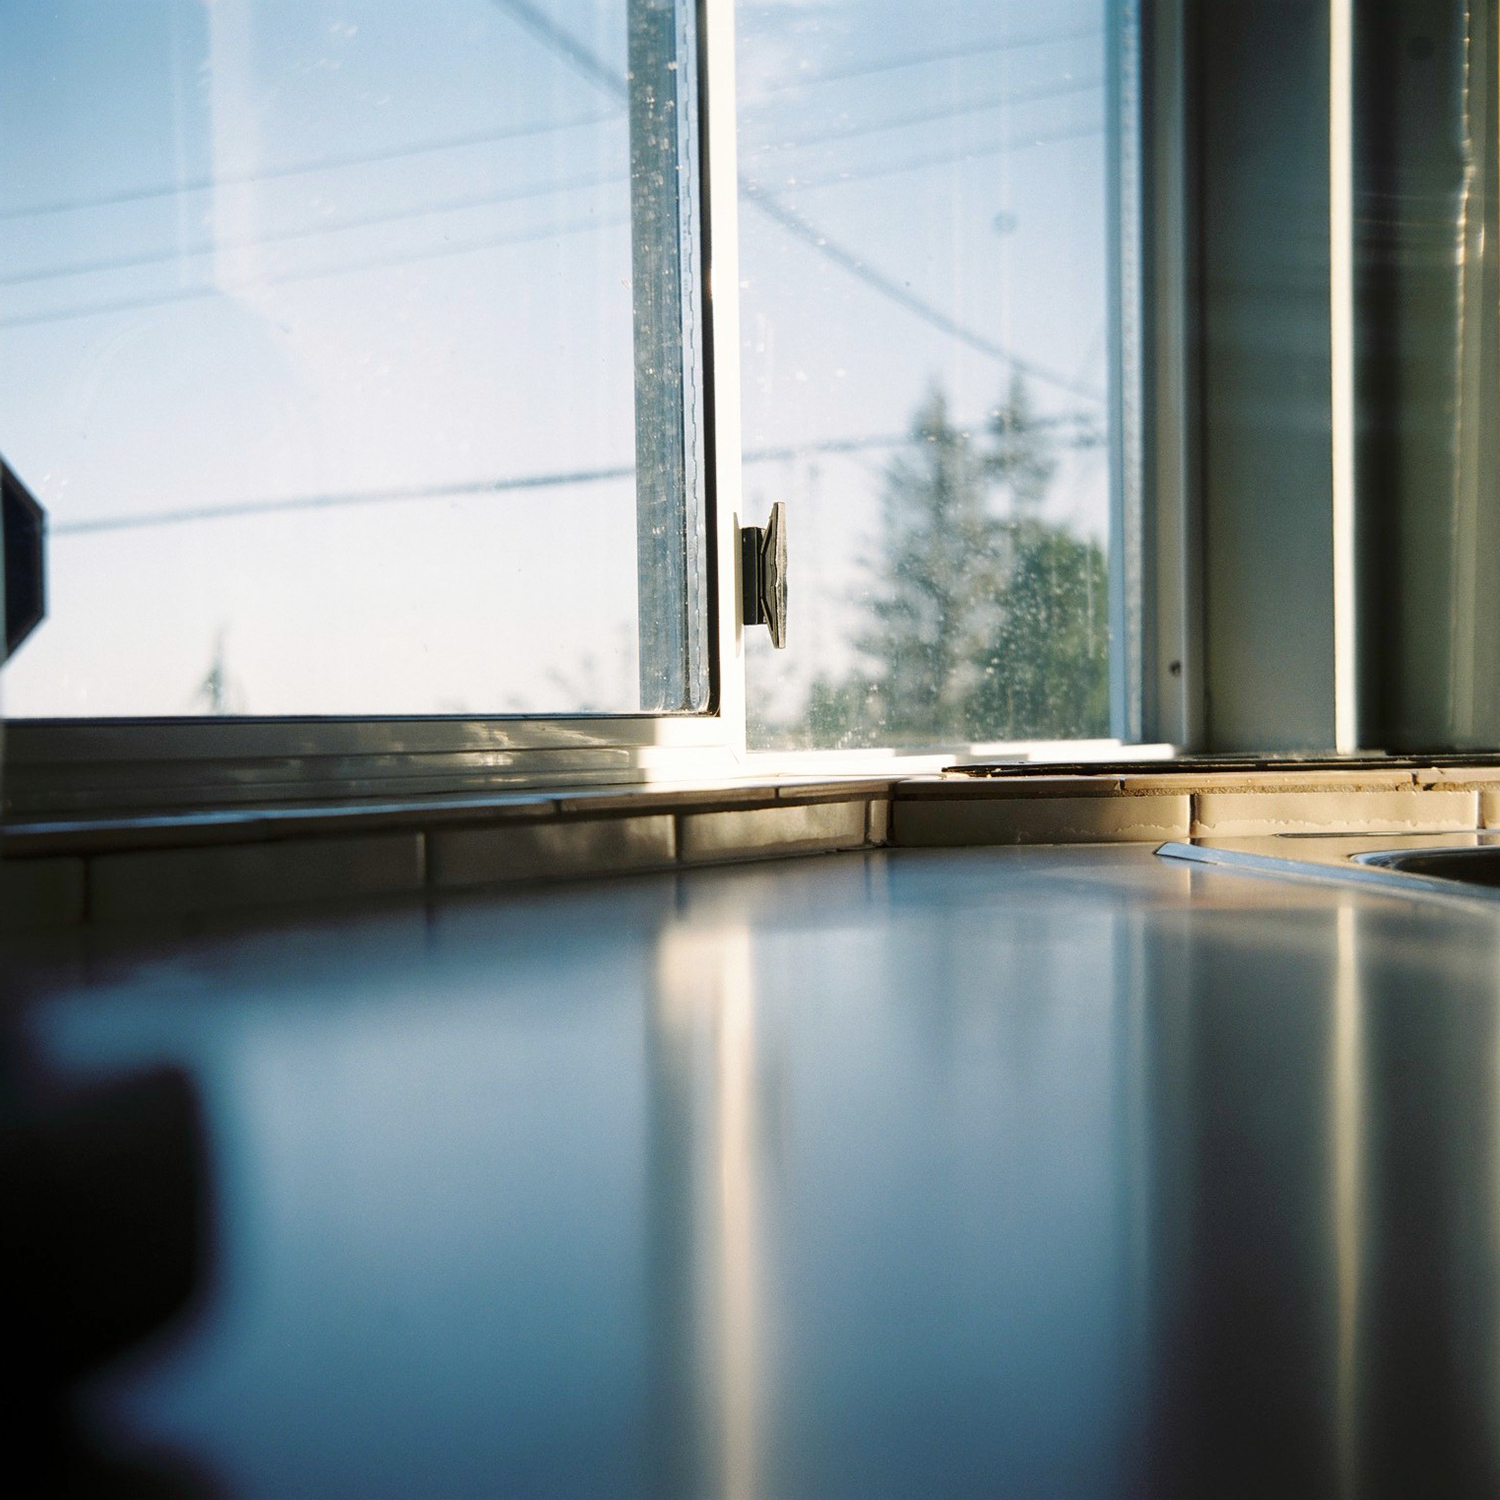 Kitchen counter reflection, North Vancouver © Tanya Clarke 2018